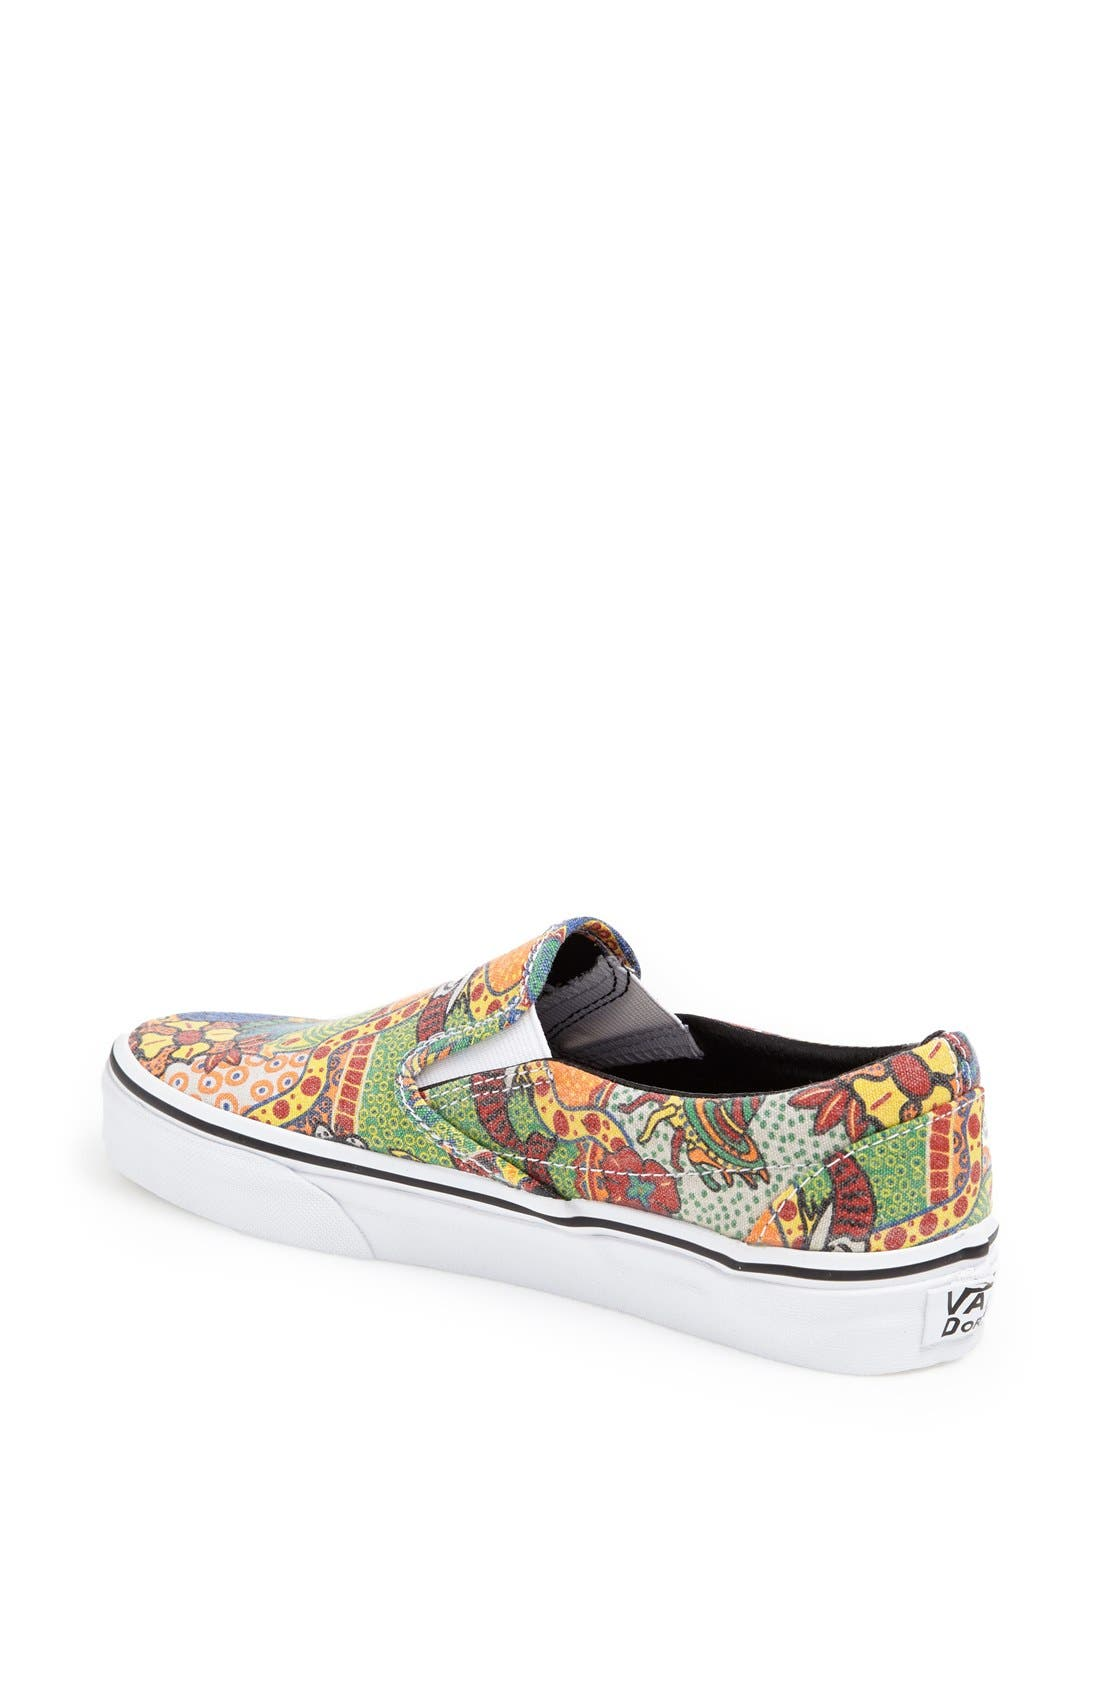 Alternate Image 2  - Vans 'Van Doren - Classic' Slip-On Sneaker (Women)